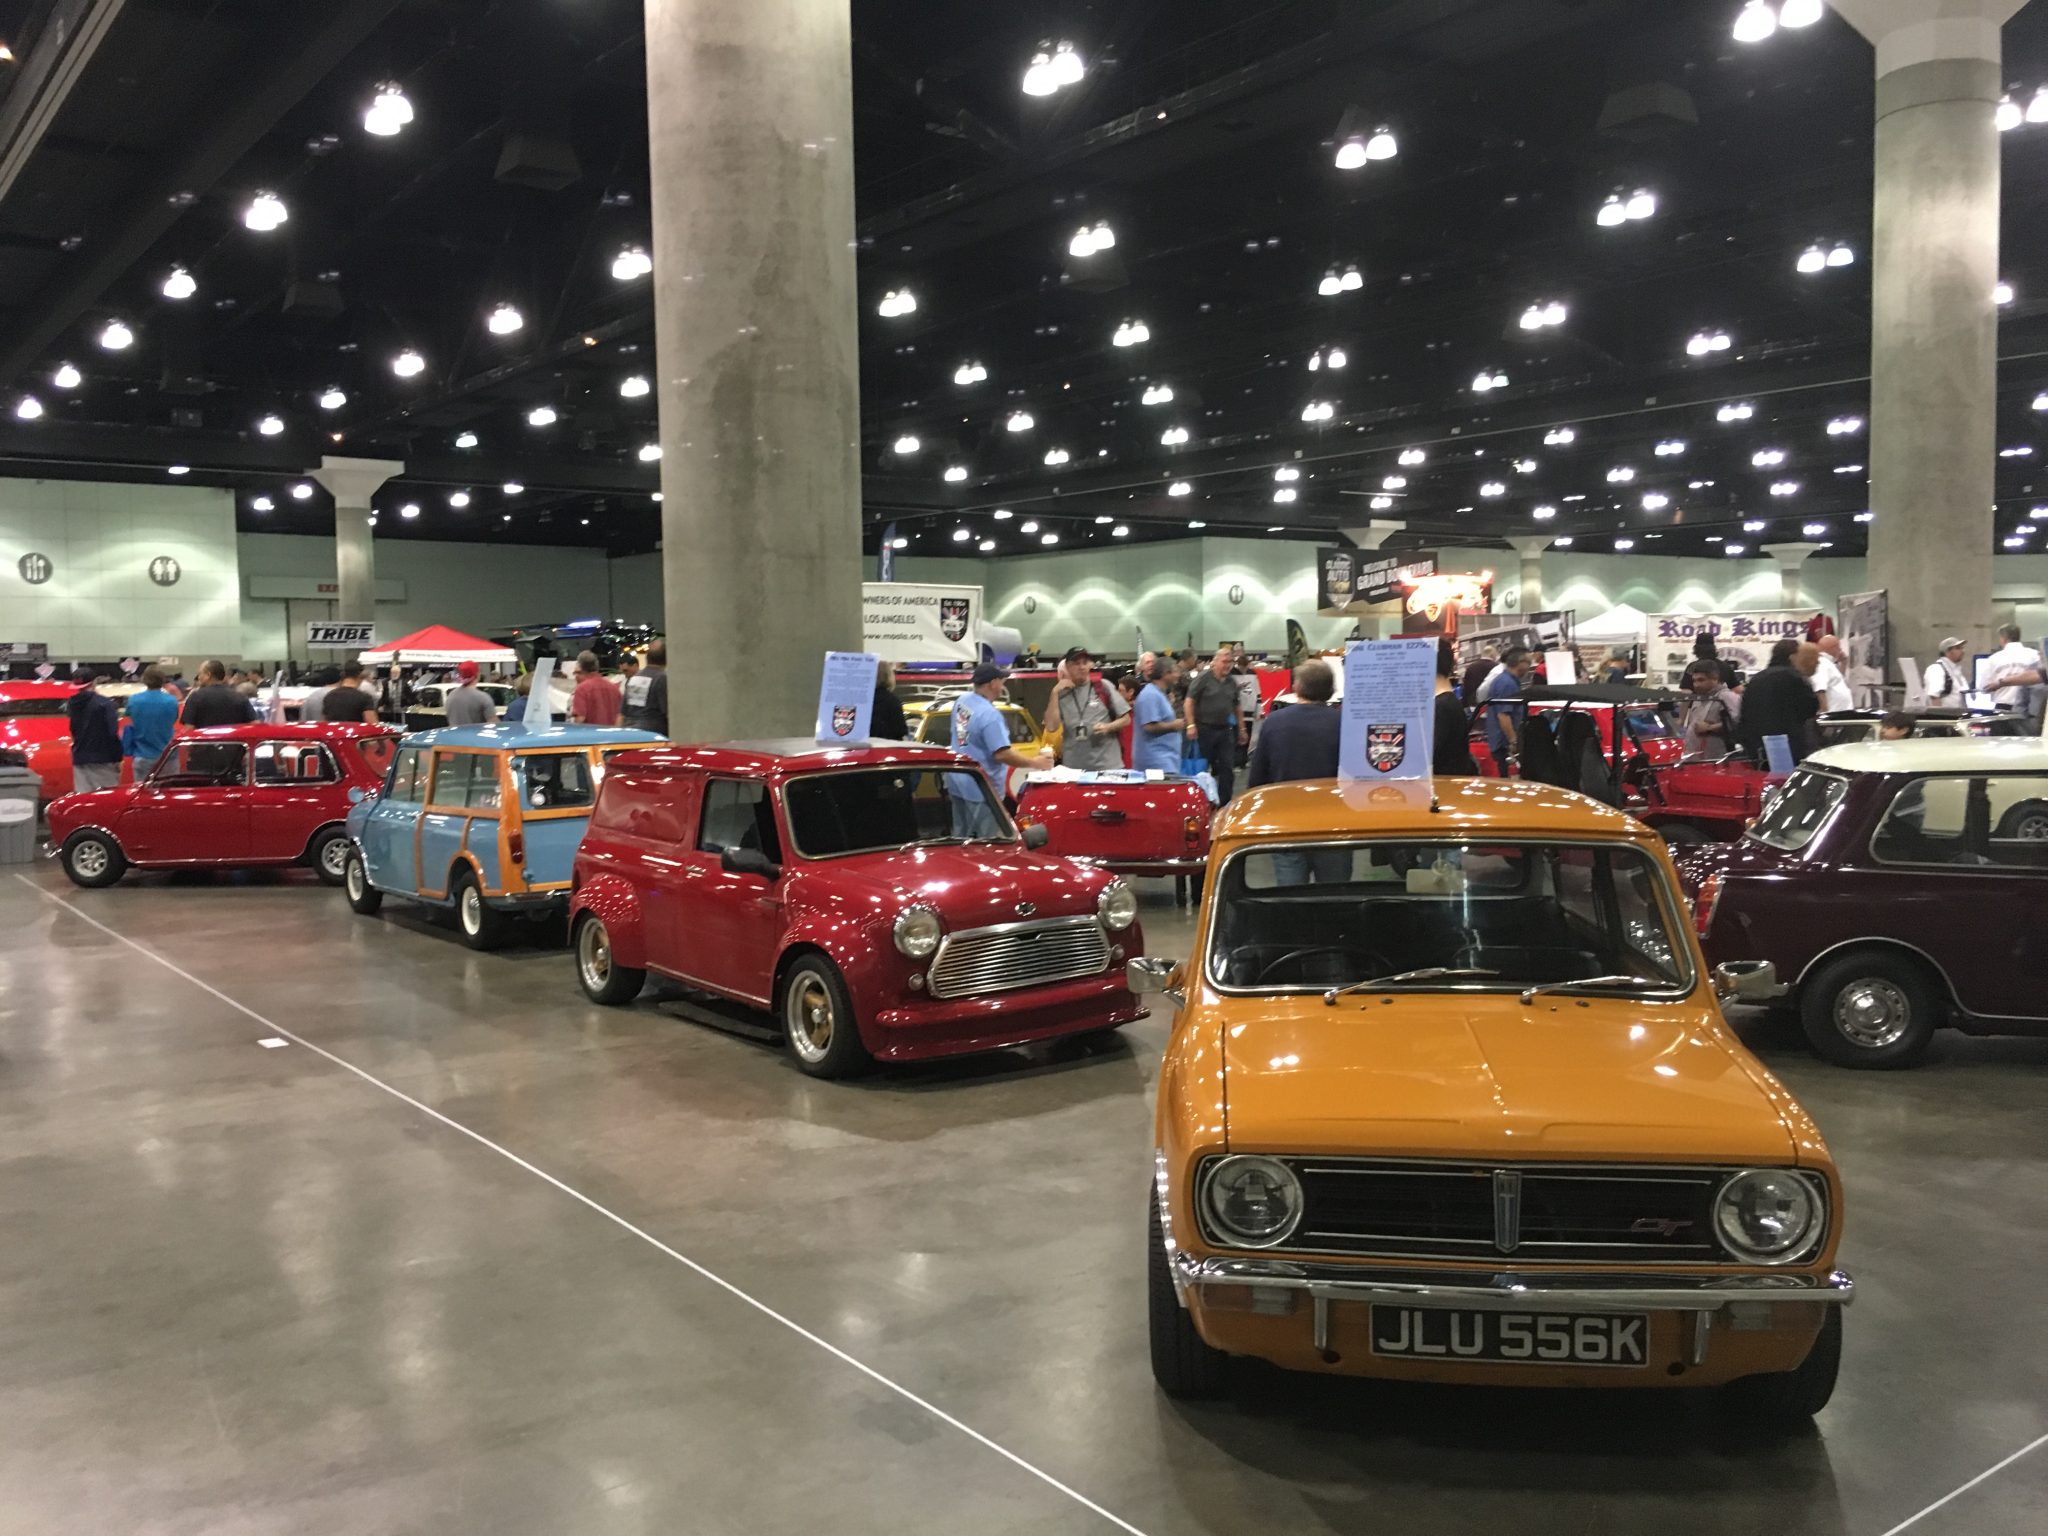 It's amazing how popular Minis are in the US and there were plenty of examples on display. No doubt the original Italian job movie is responsible.